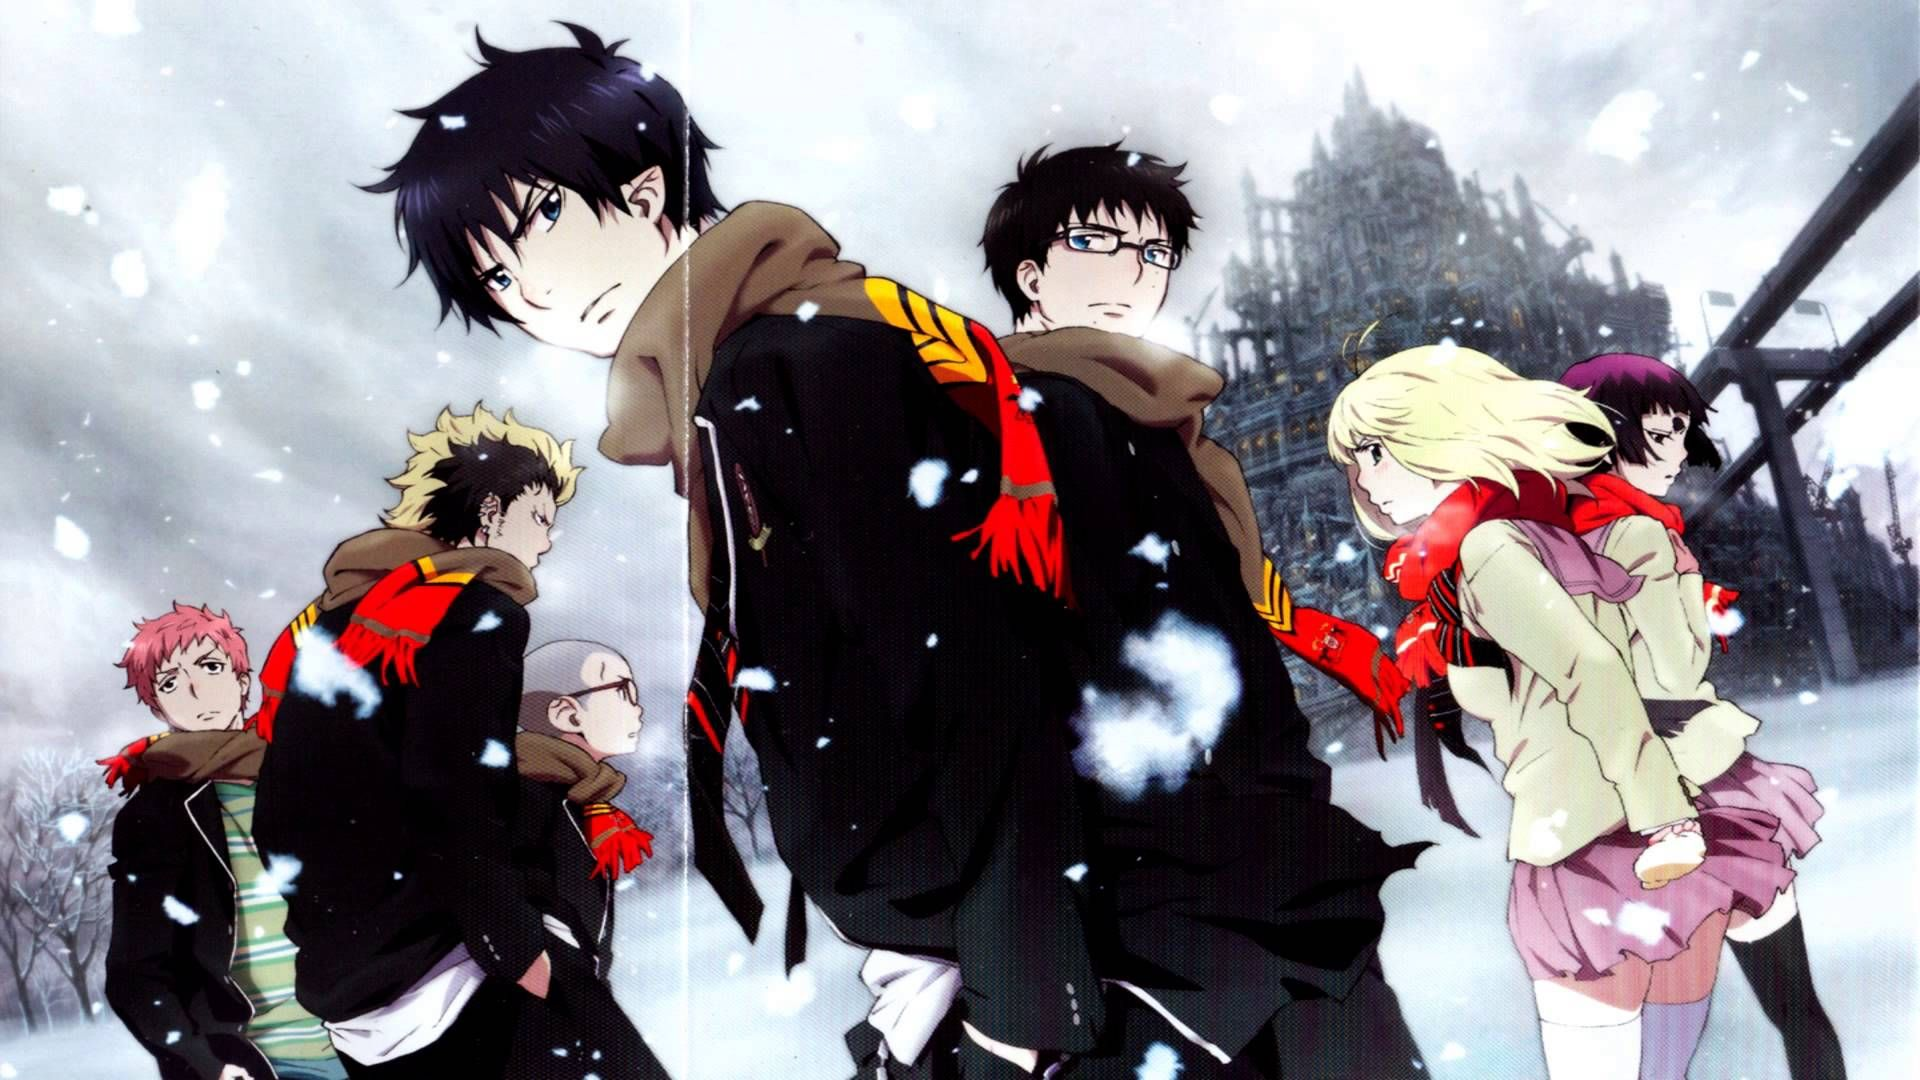 Nightcore The One (With images) Blue exorcist anime